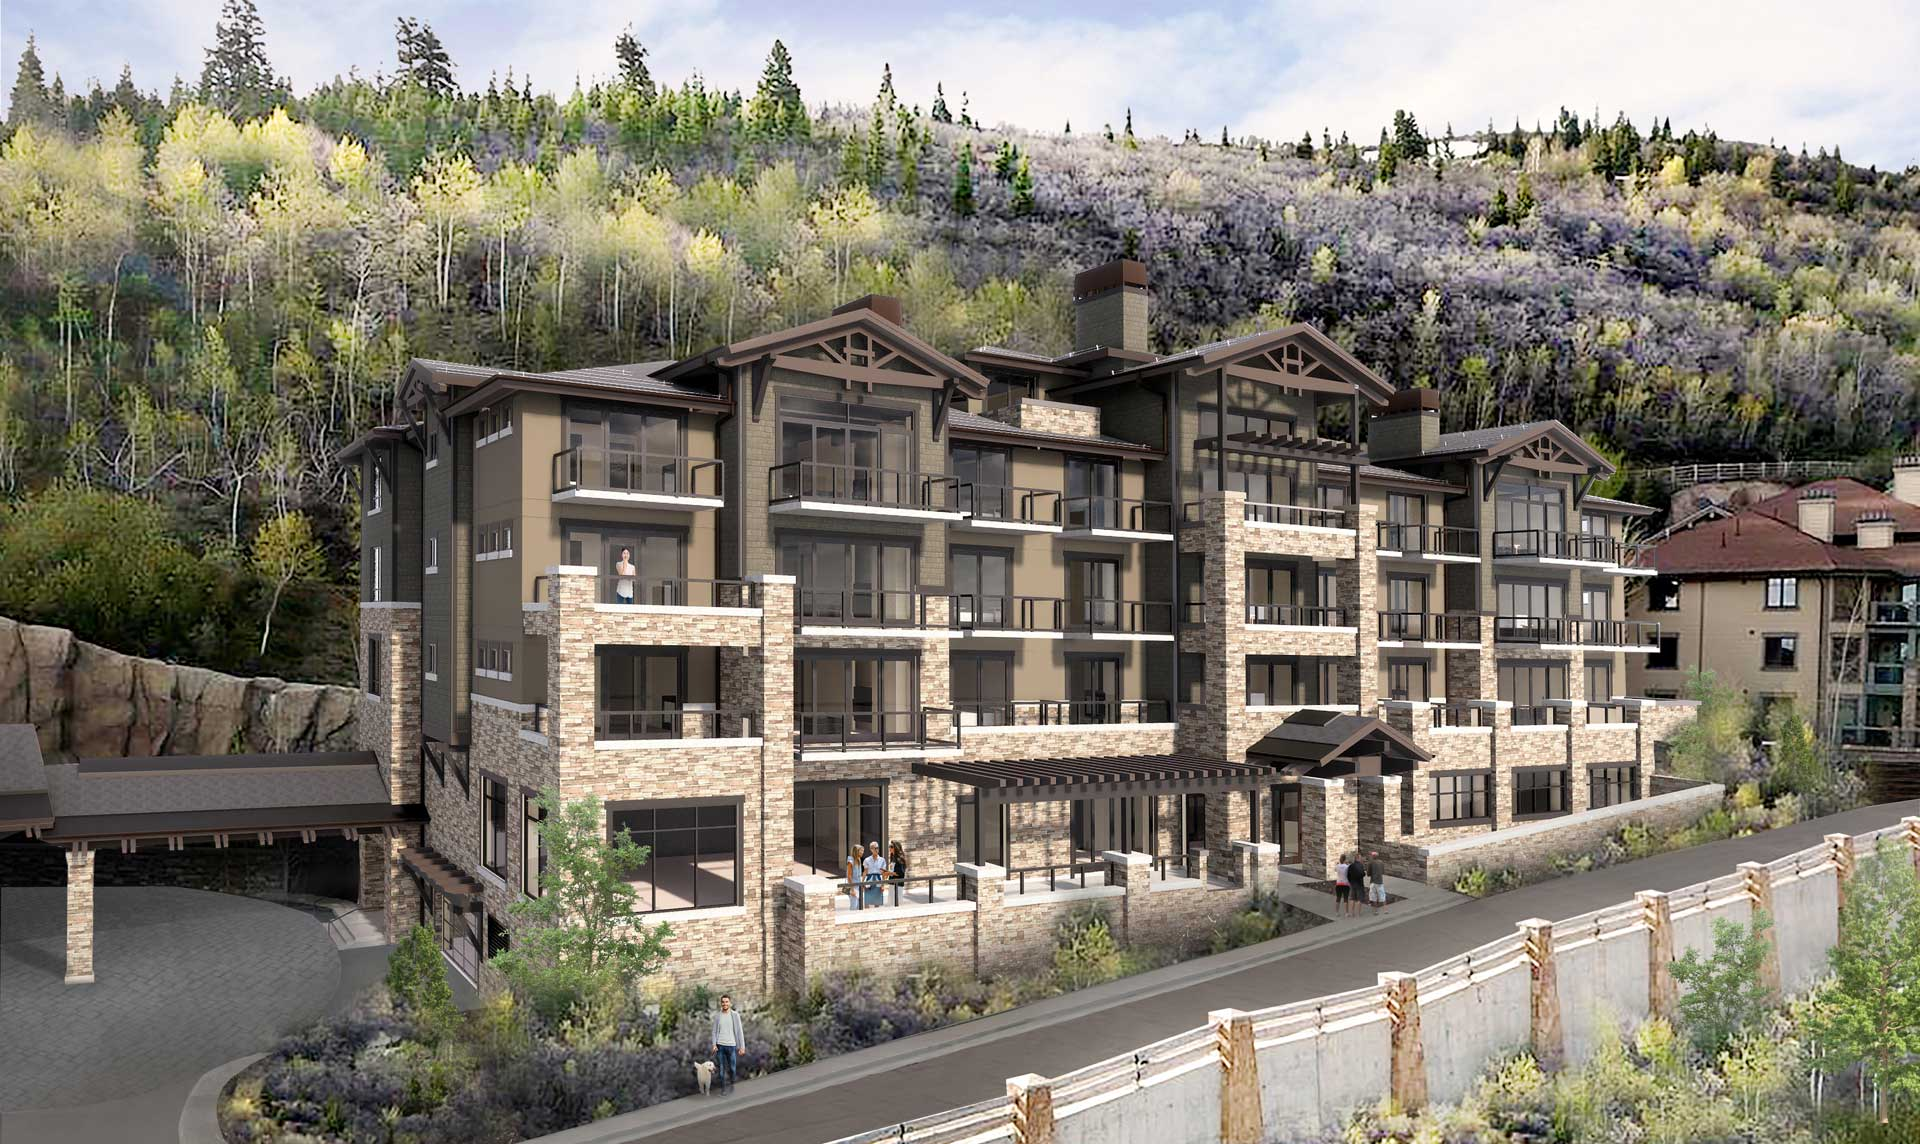 The Snow Park Residences at The St. Regis Deer Valley - Phase II Rendering